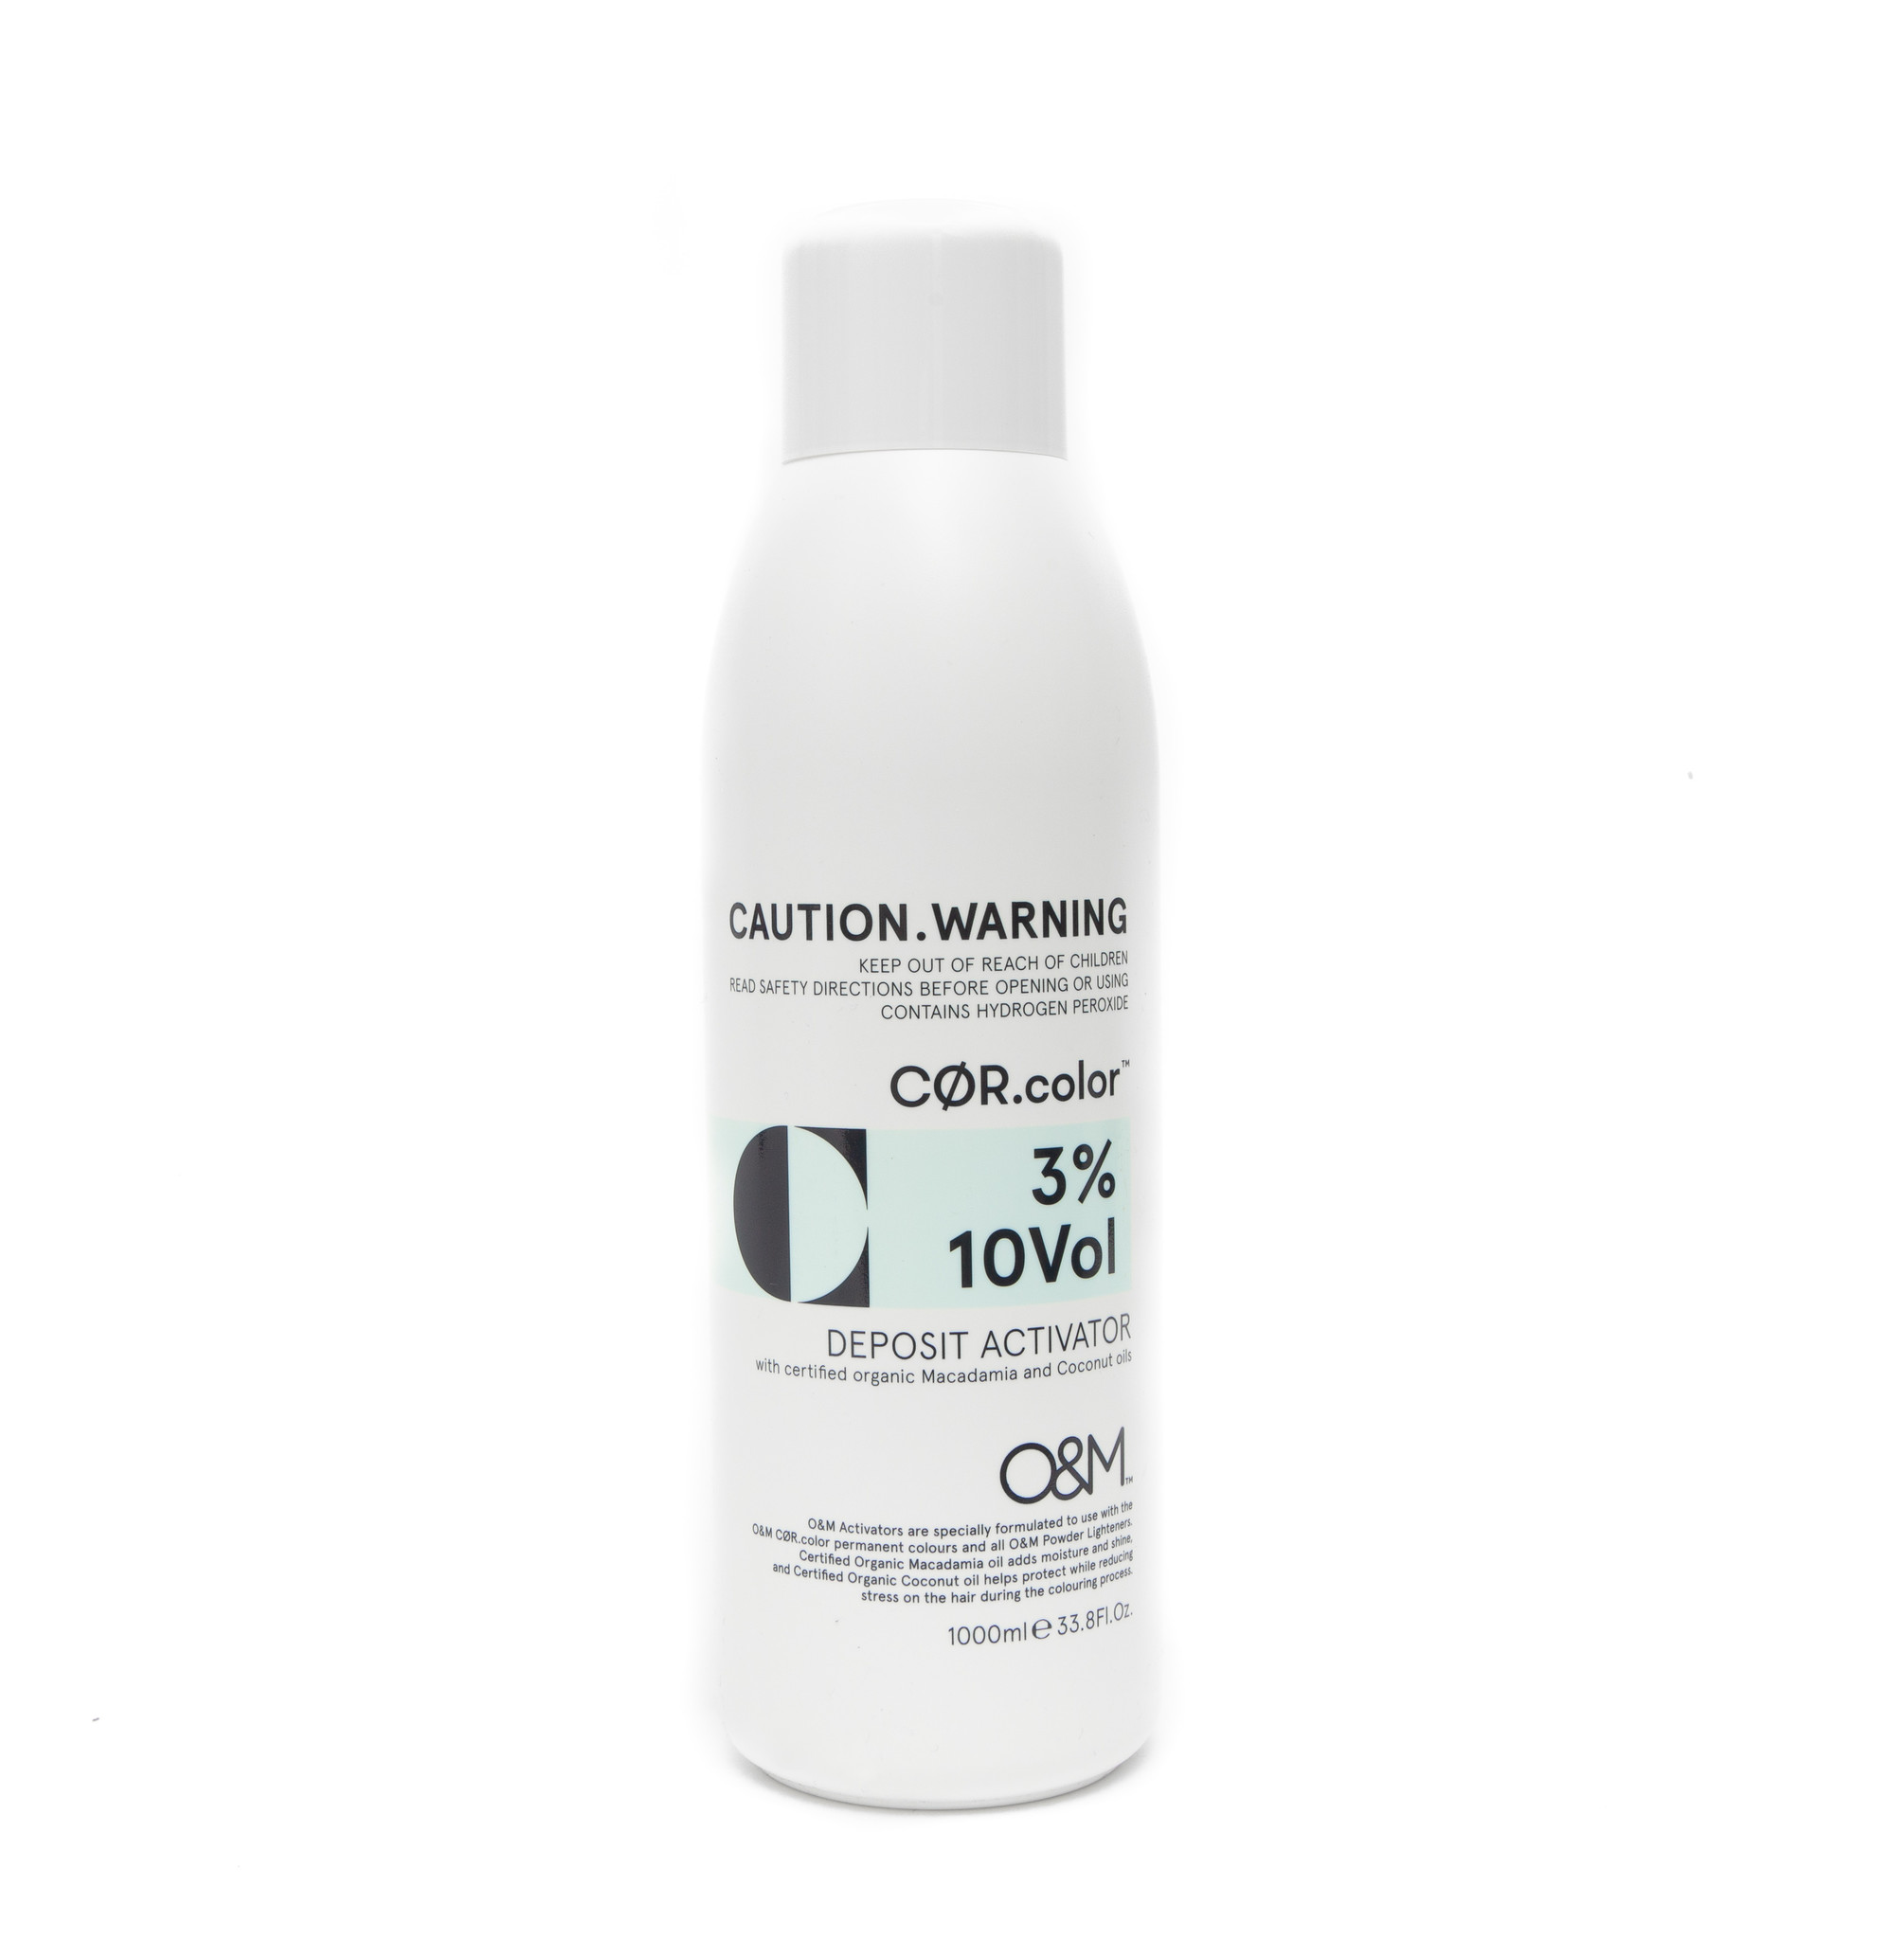 O&M - Original Mineral O&M CØR.COLOR Deposit Activator 10Vol - 3% - 1000 ml